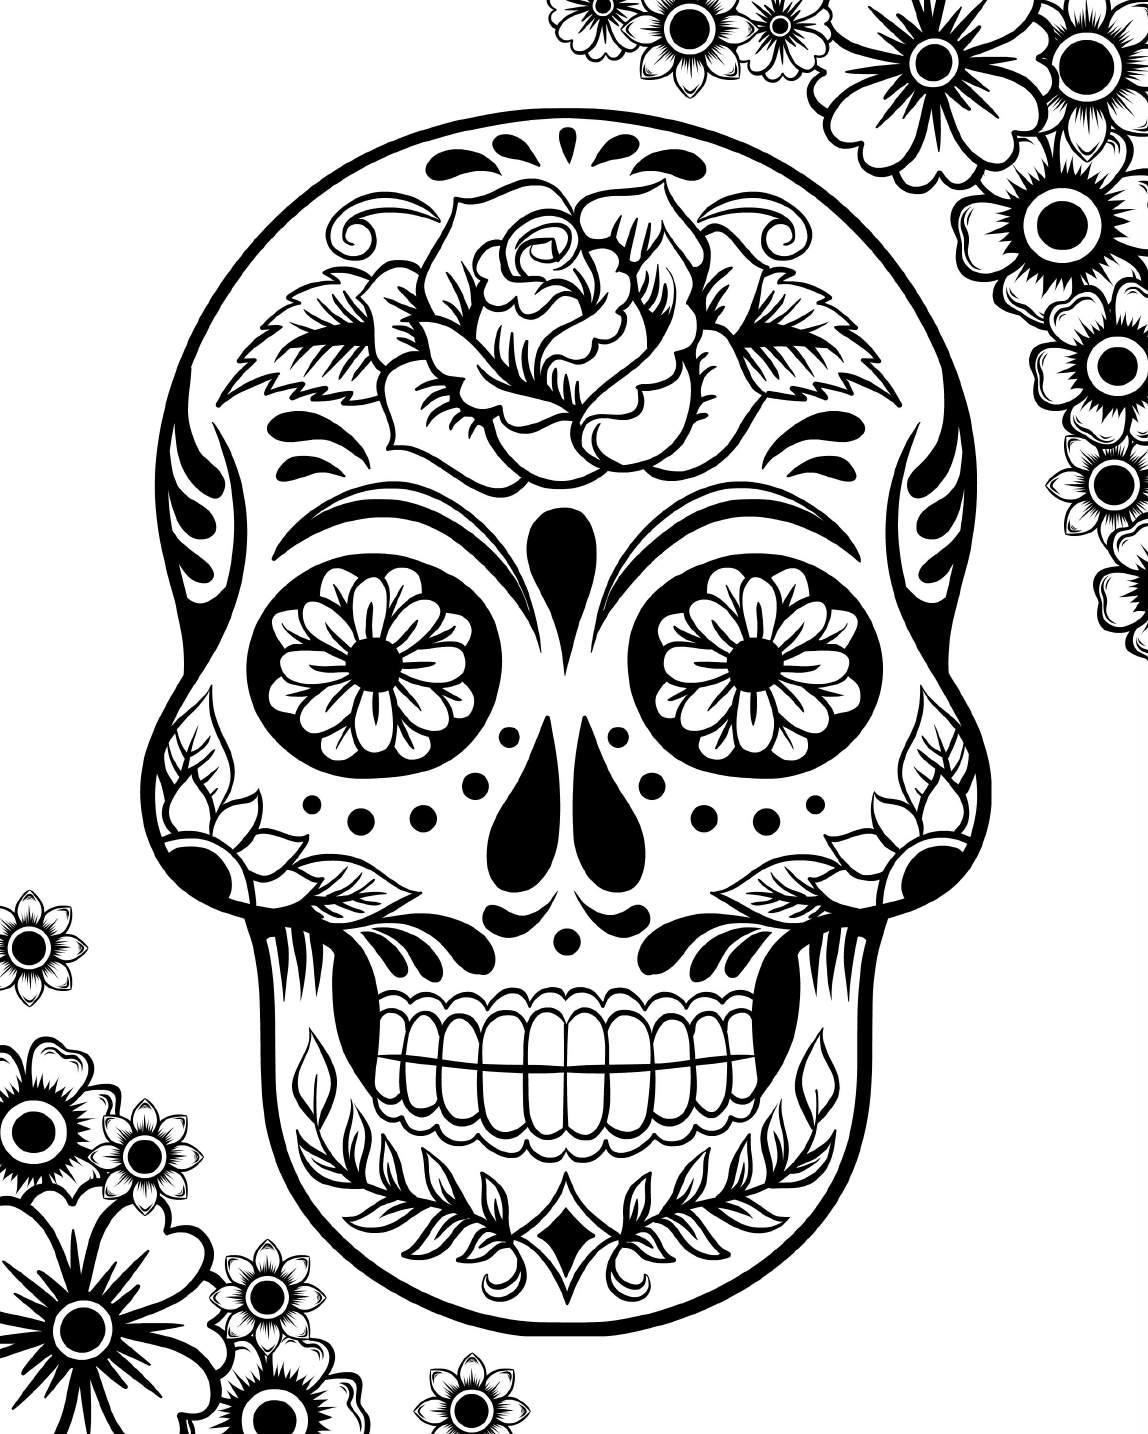 Day of the Dead & the Sugar Skull Tradition